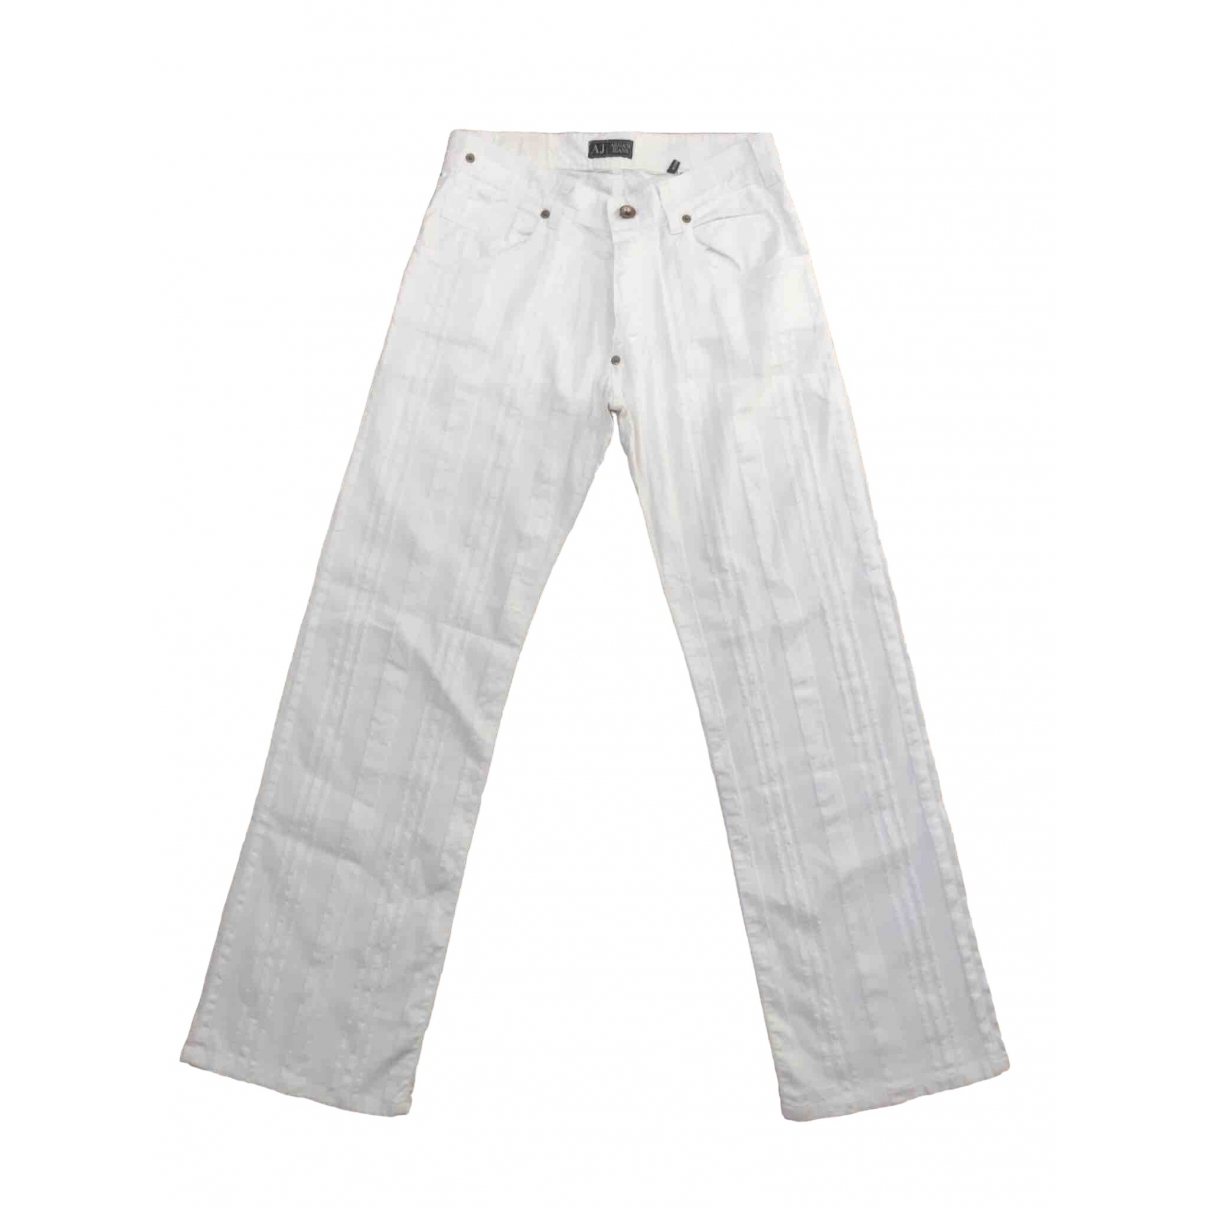 Armani Jeans \N White Linen Trousers for Women XS International